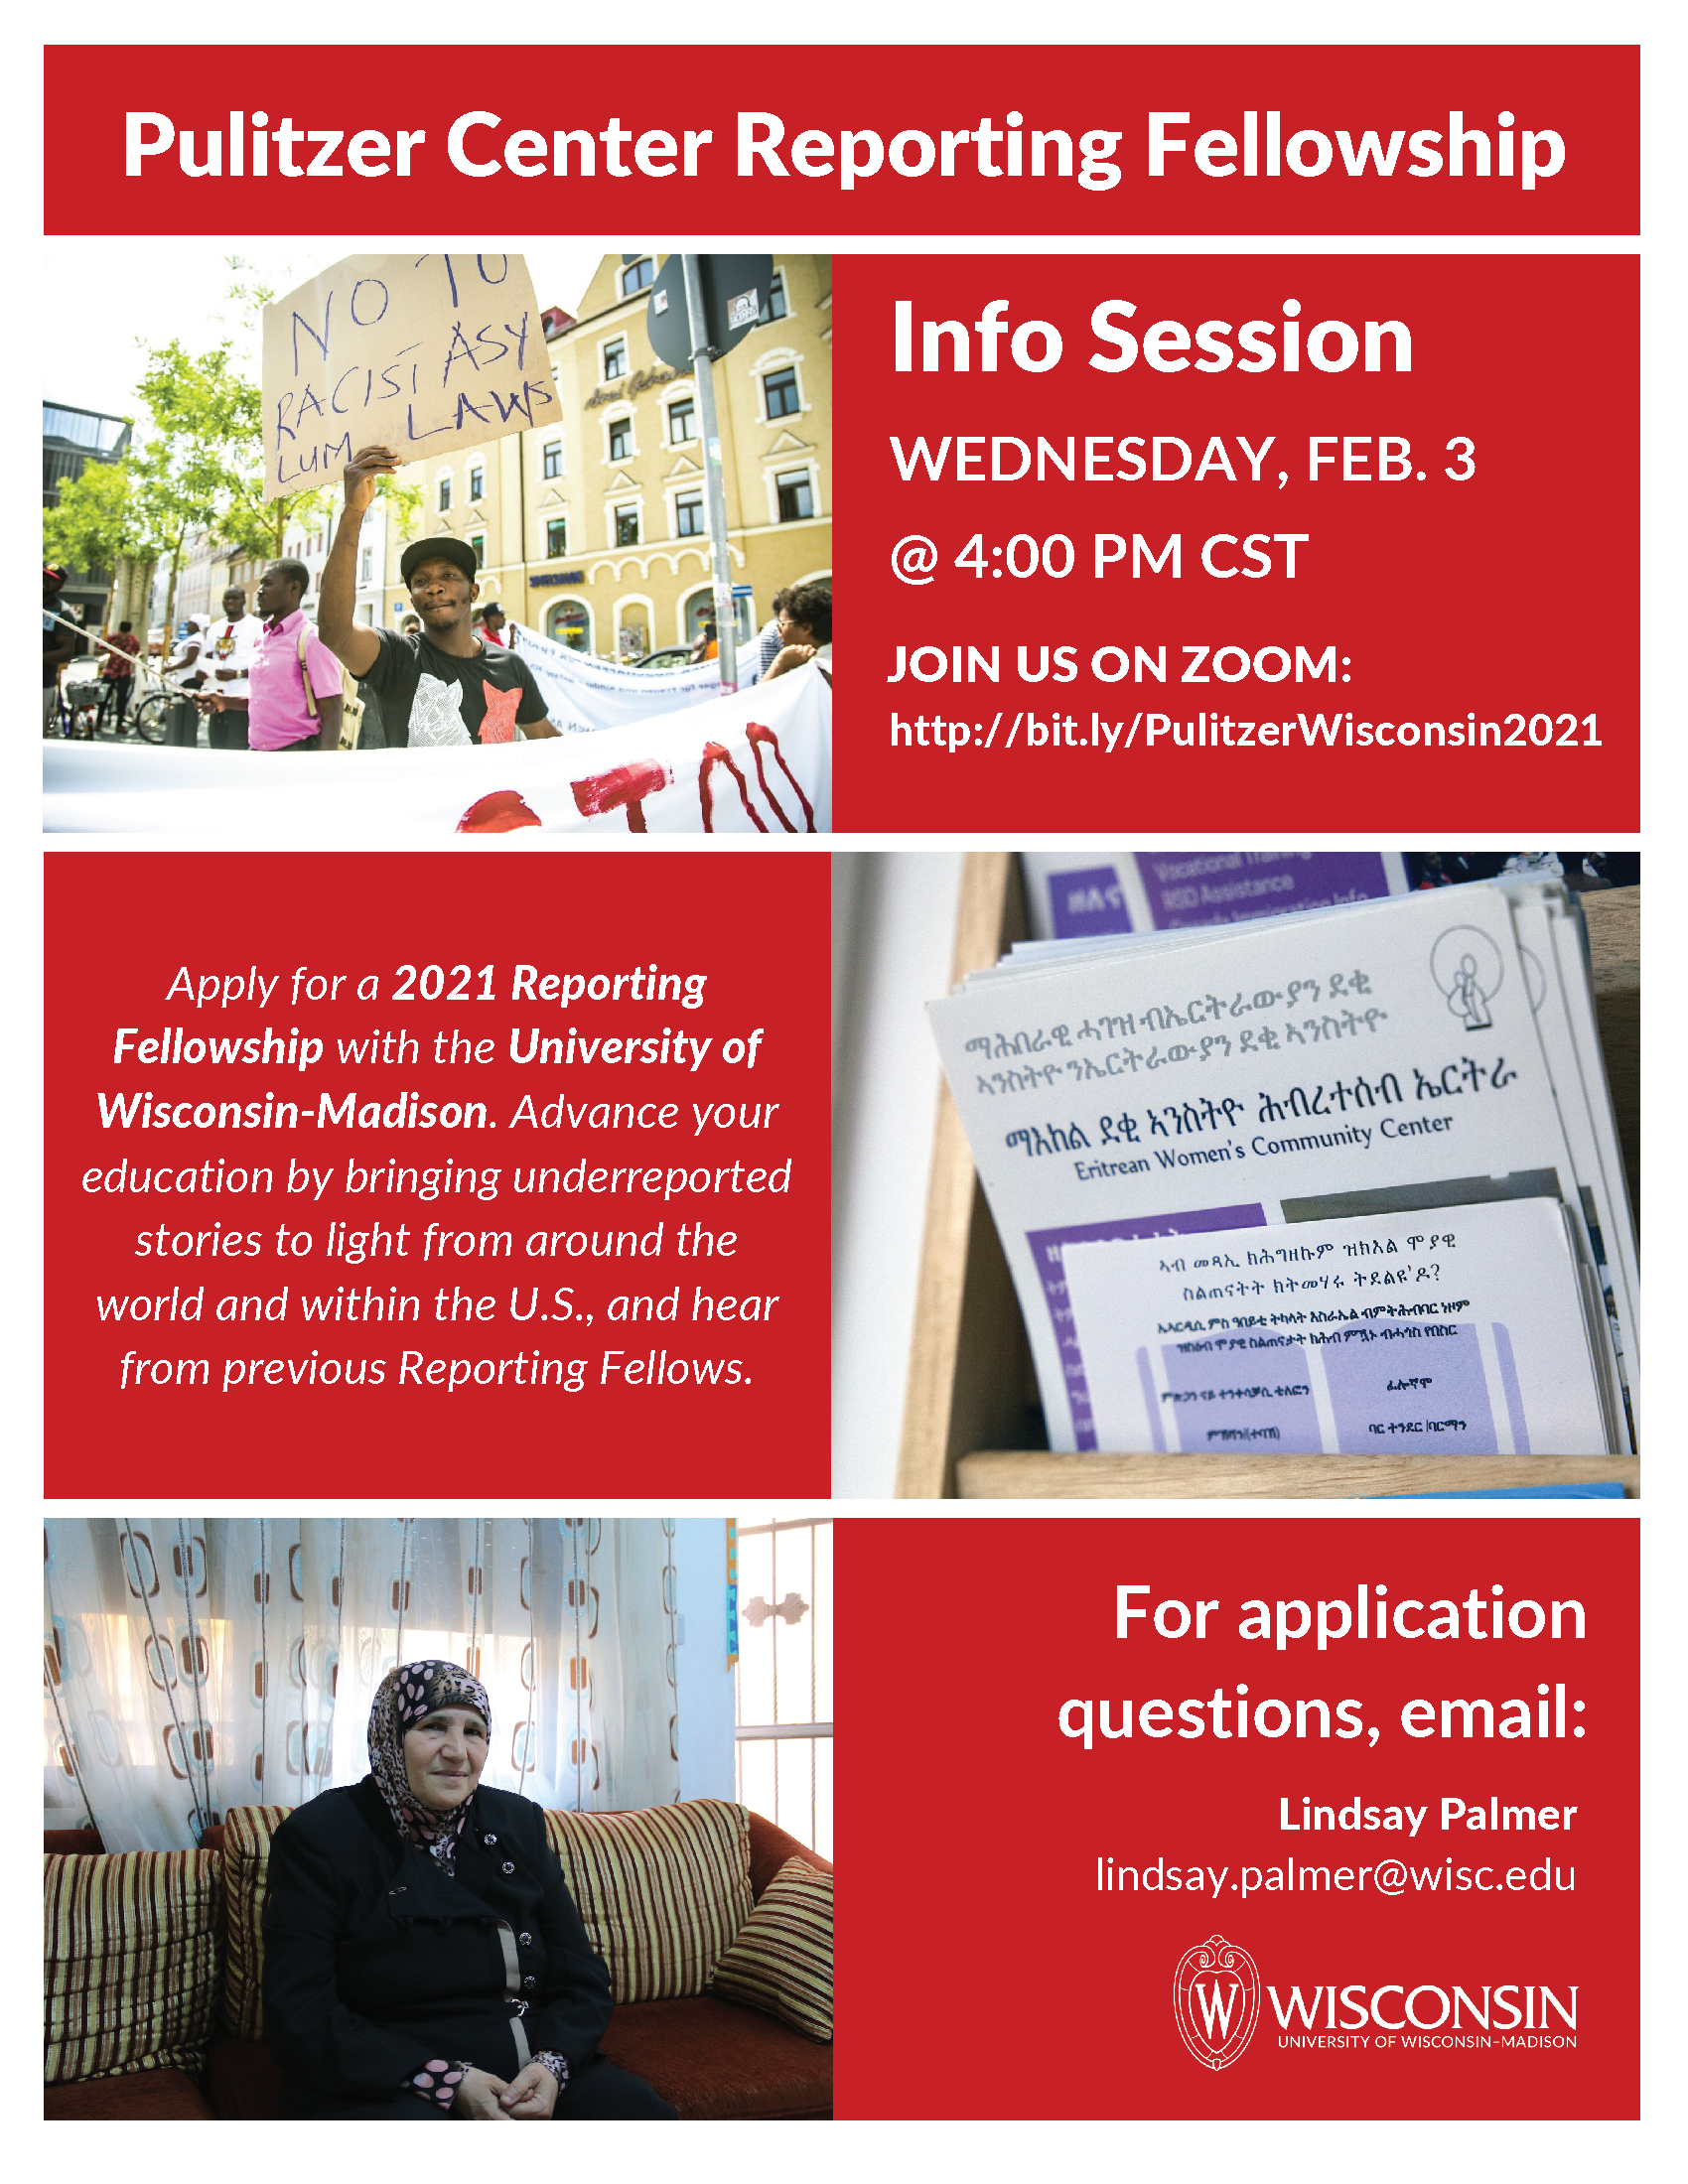 Pulitzer Center reporting Fellowship information session